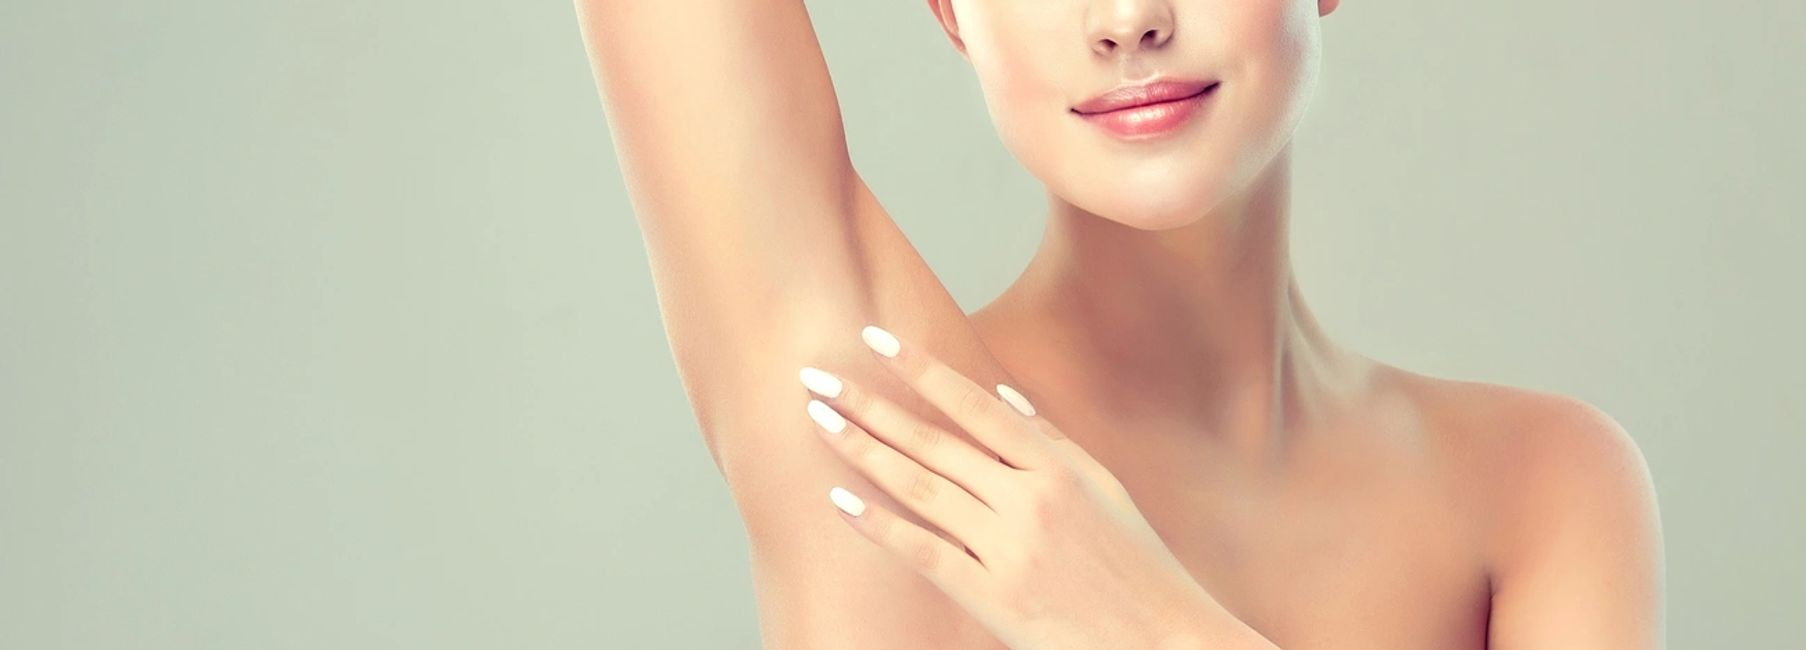 We provides effective botulinum toxin injections to  help reduce excessive sweating/ hyperhidrosis.